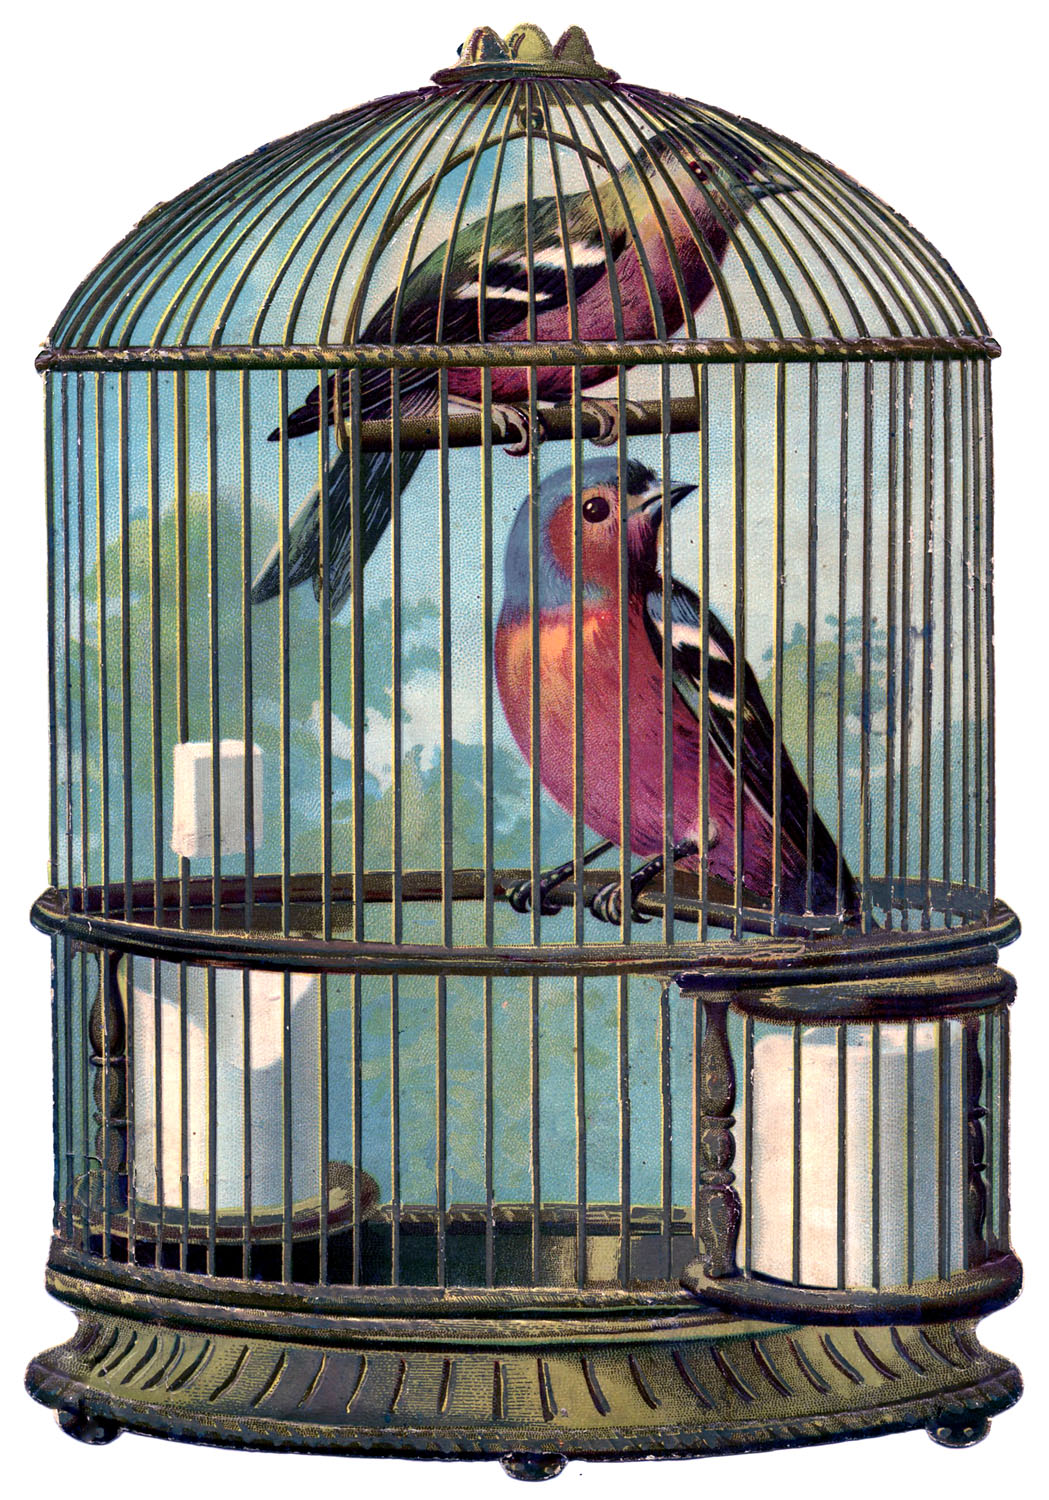 Antique bird cage drawing - photo#23